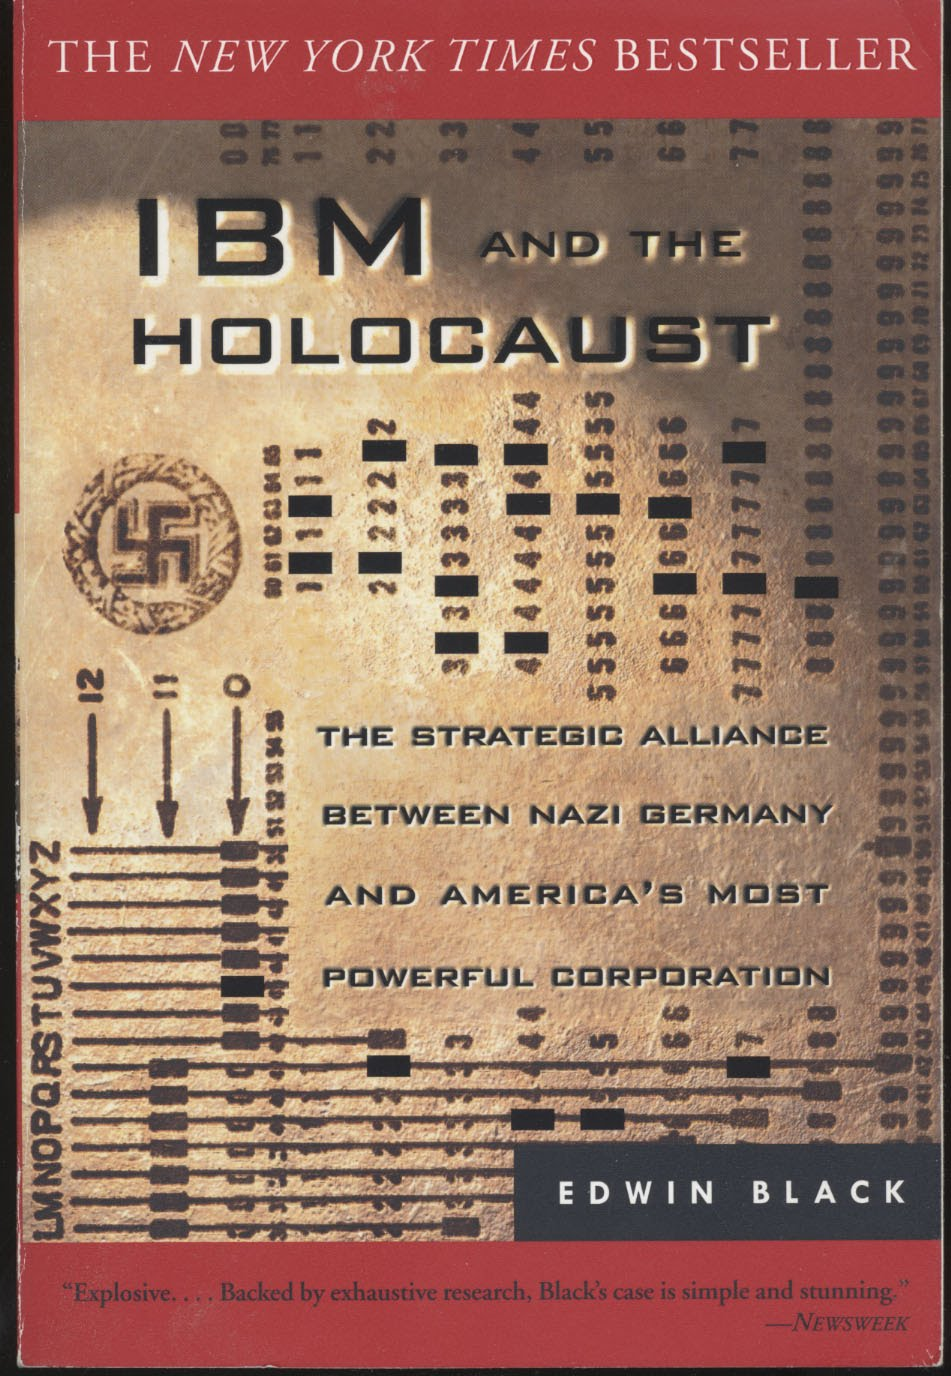 an analysis of the hitlers final solution in the second world war Without the holocaust, the population of jewish refugees would have been far   and what if there had never been world war ii would  analysis on the most  important global story of the day, top reads, interesting ideas and.